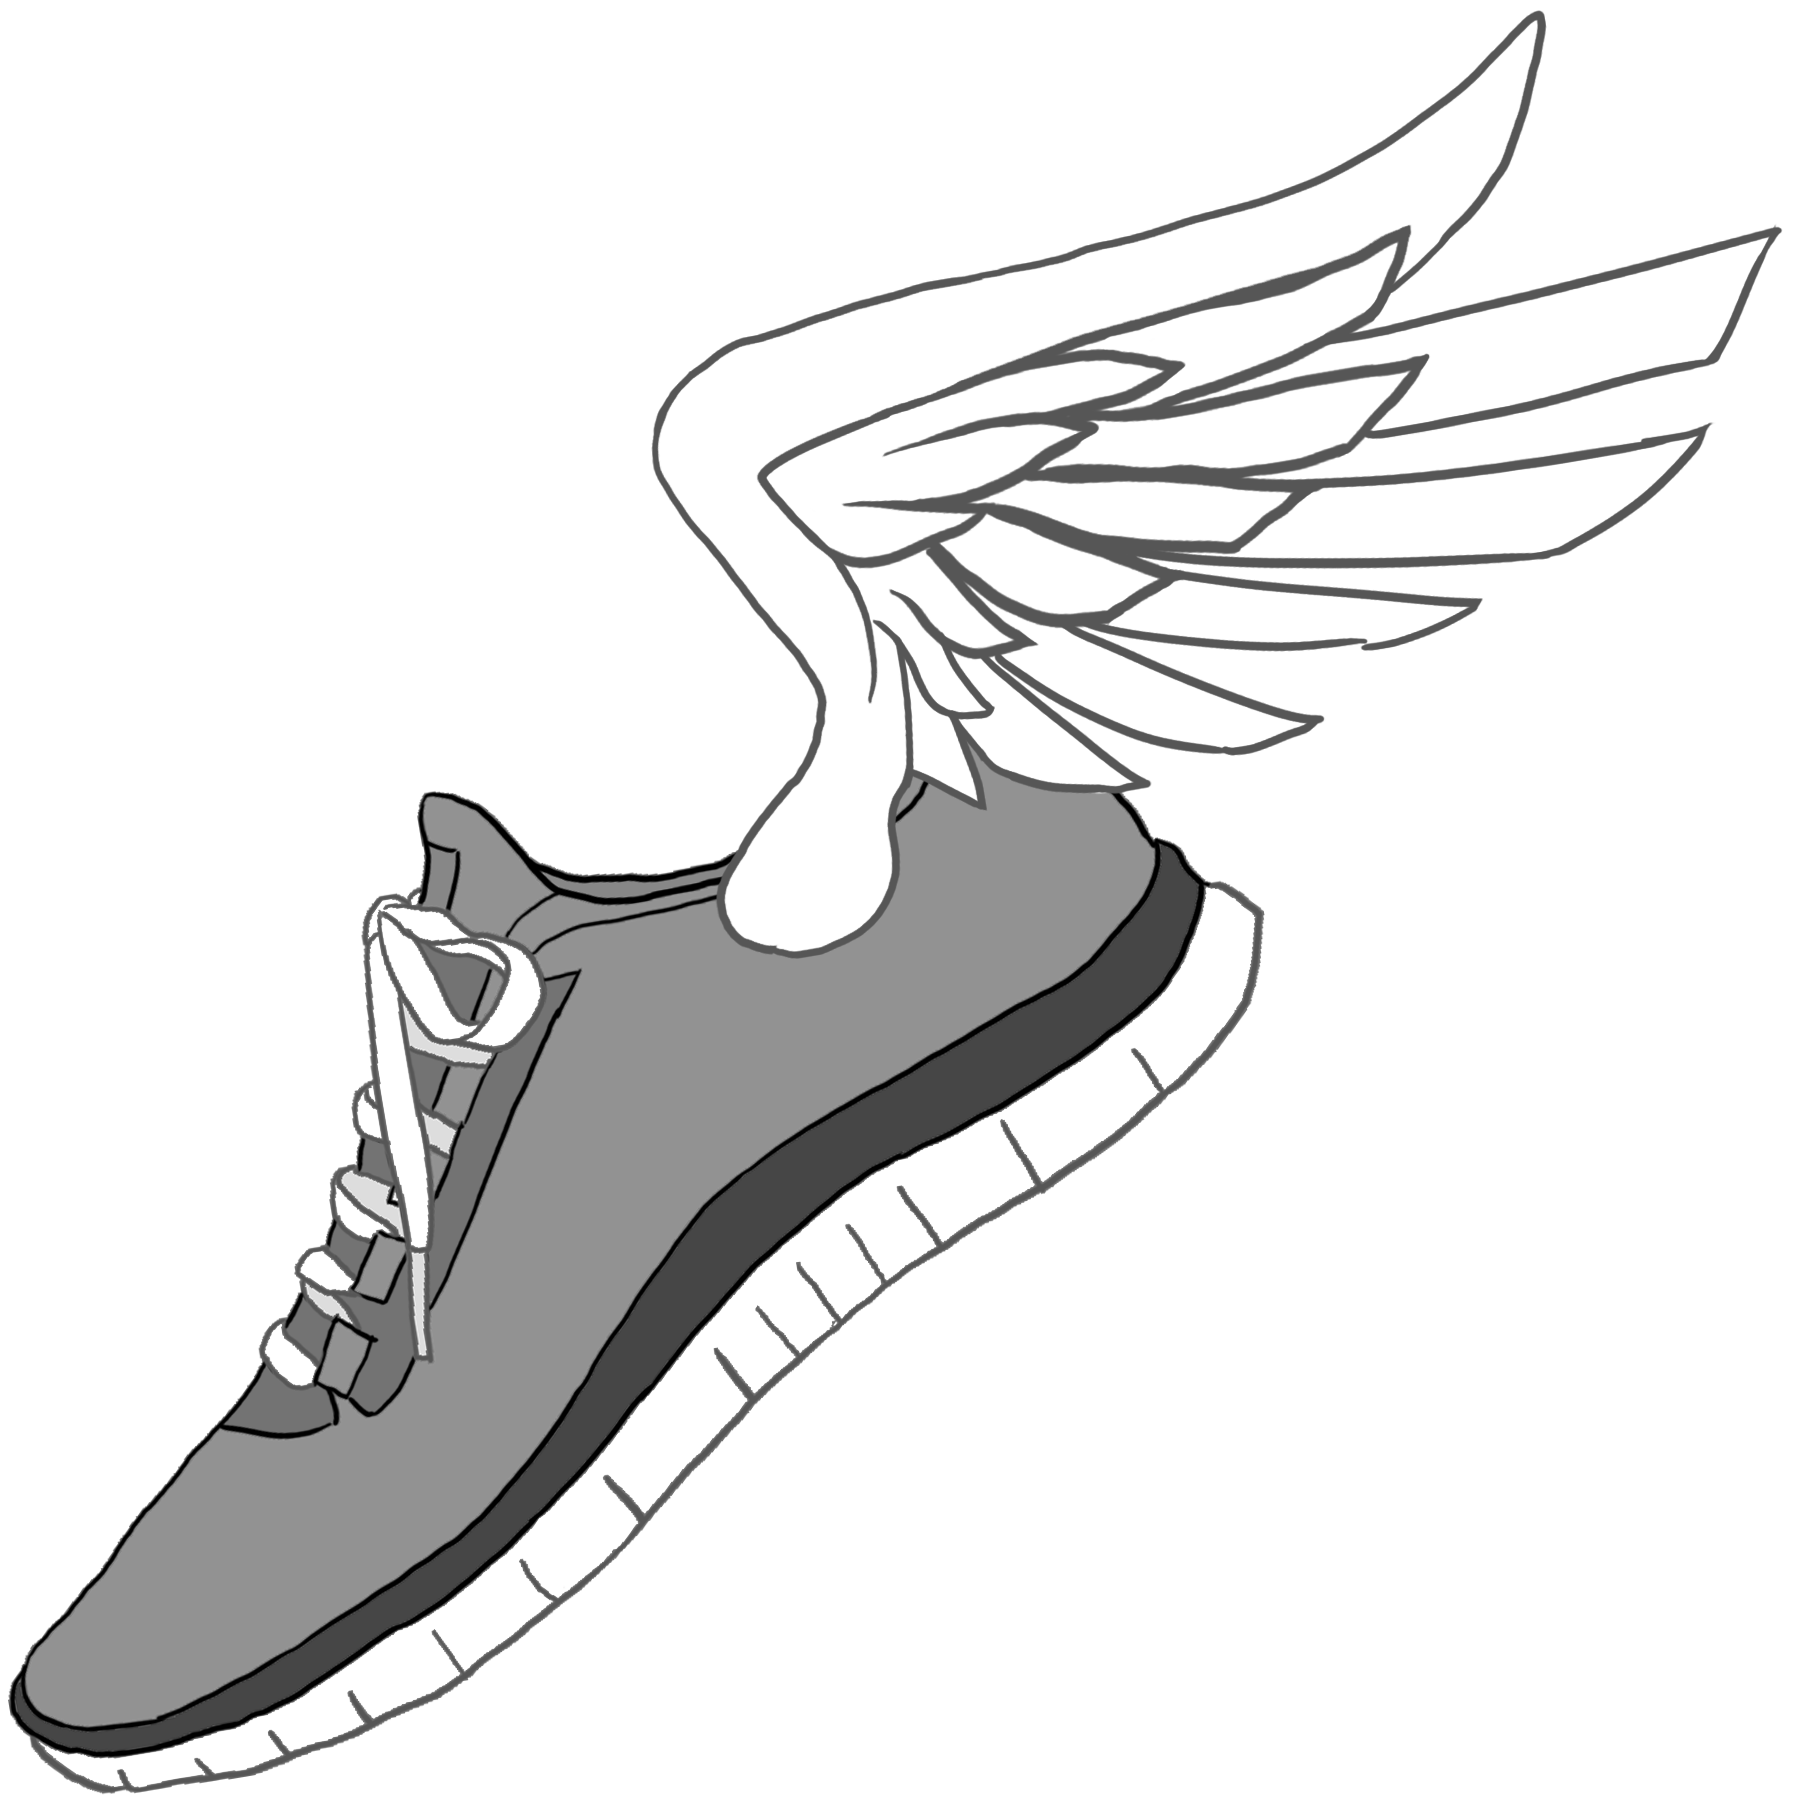 running clipart | Running Shoe with wings clip art | 5k | Pinterest | Running  shoes, Clip art and Running